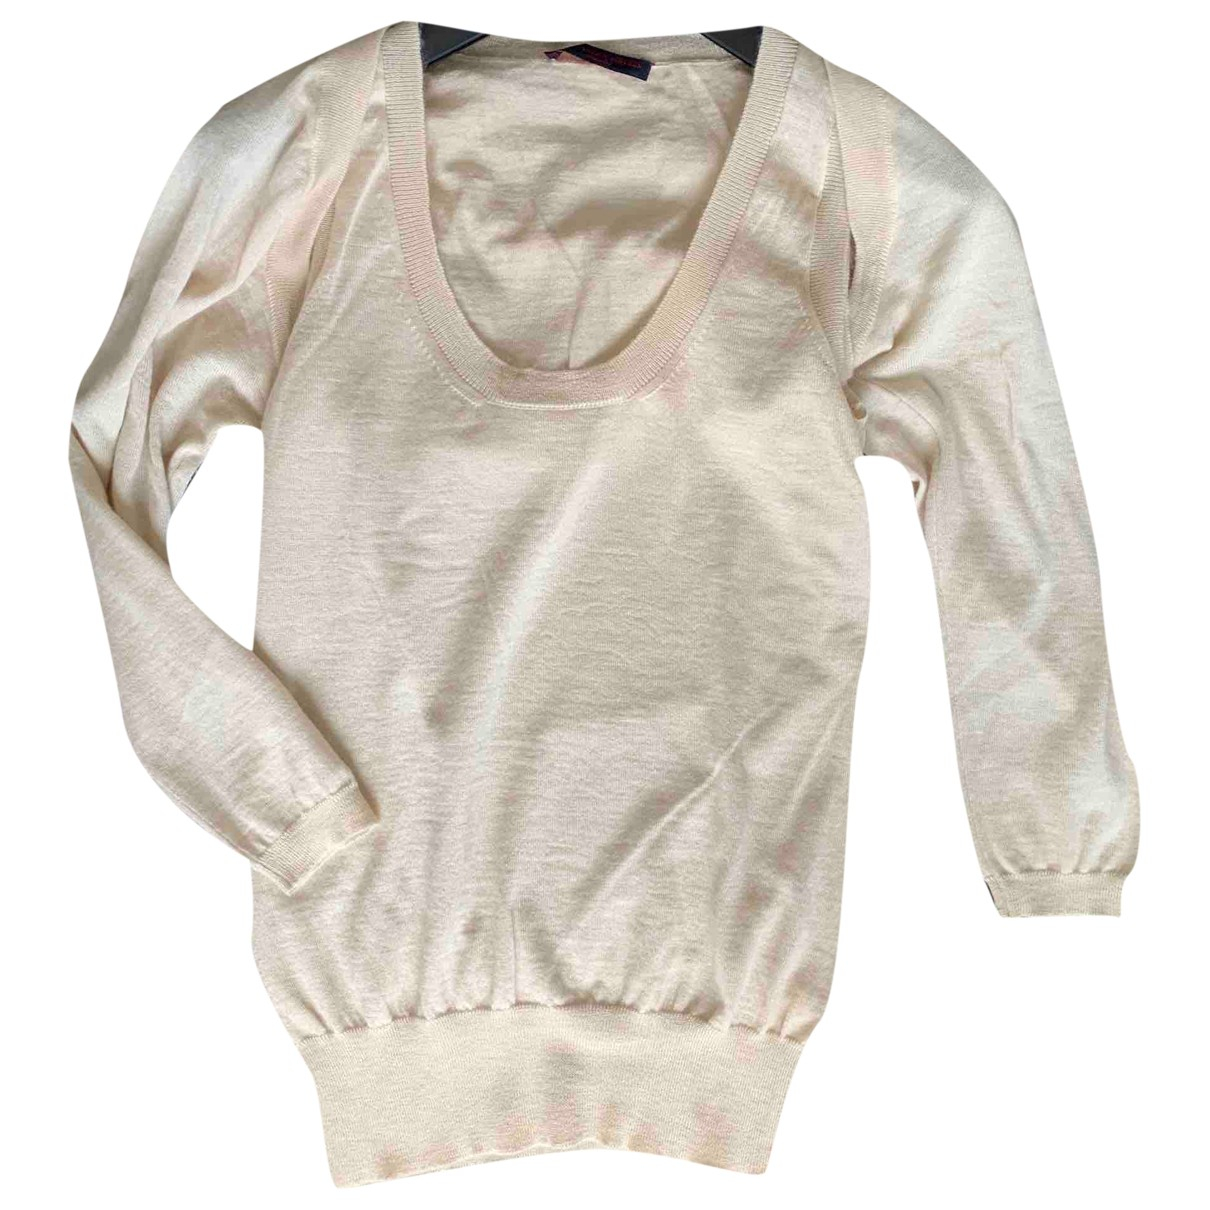 Alexander Mcqueen \N Beige Cashmere Knitwear for Women S International